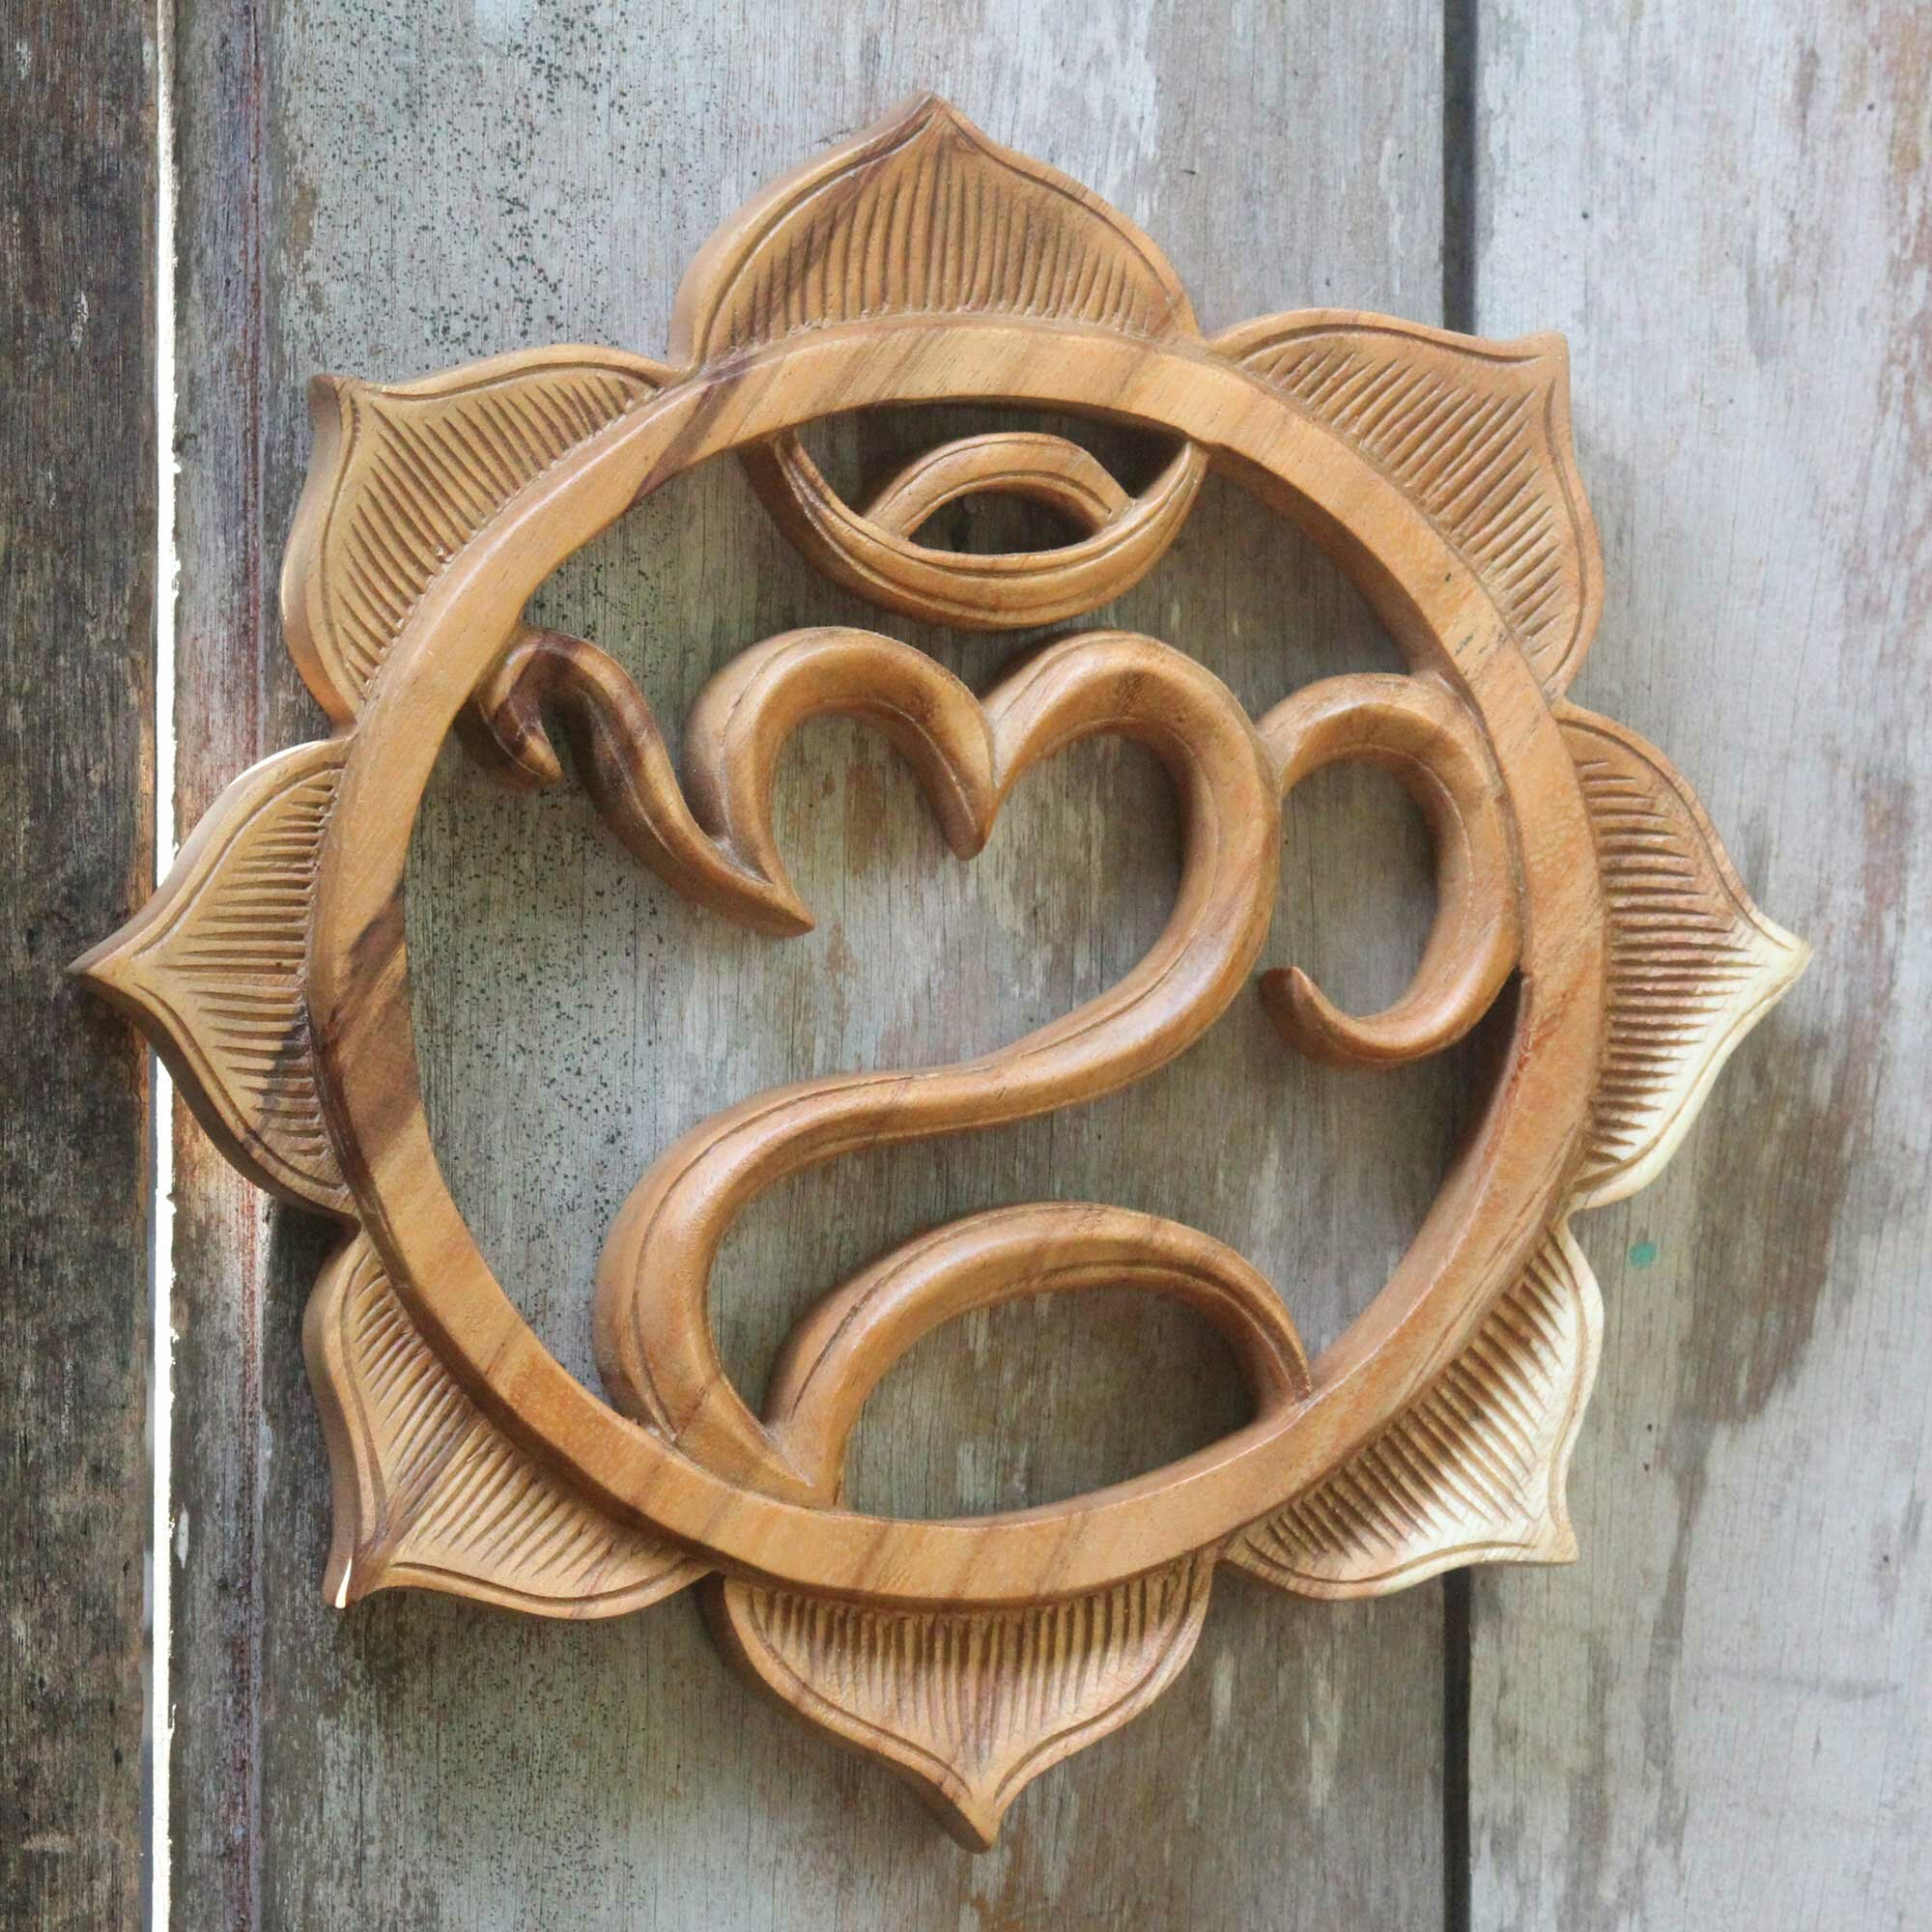 Wood Carved Wall Decor Novica Made Mulyani Artisan Carved Balinese Hindu Wood Relief